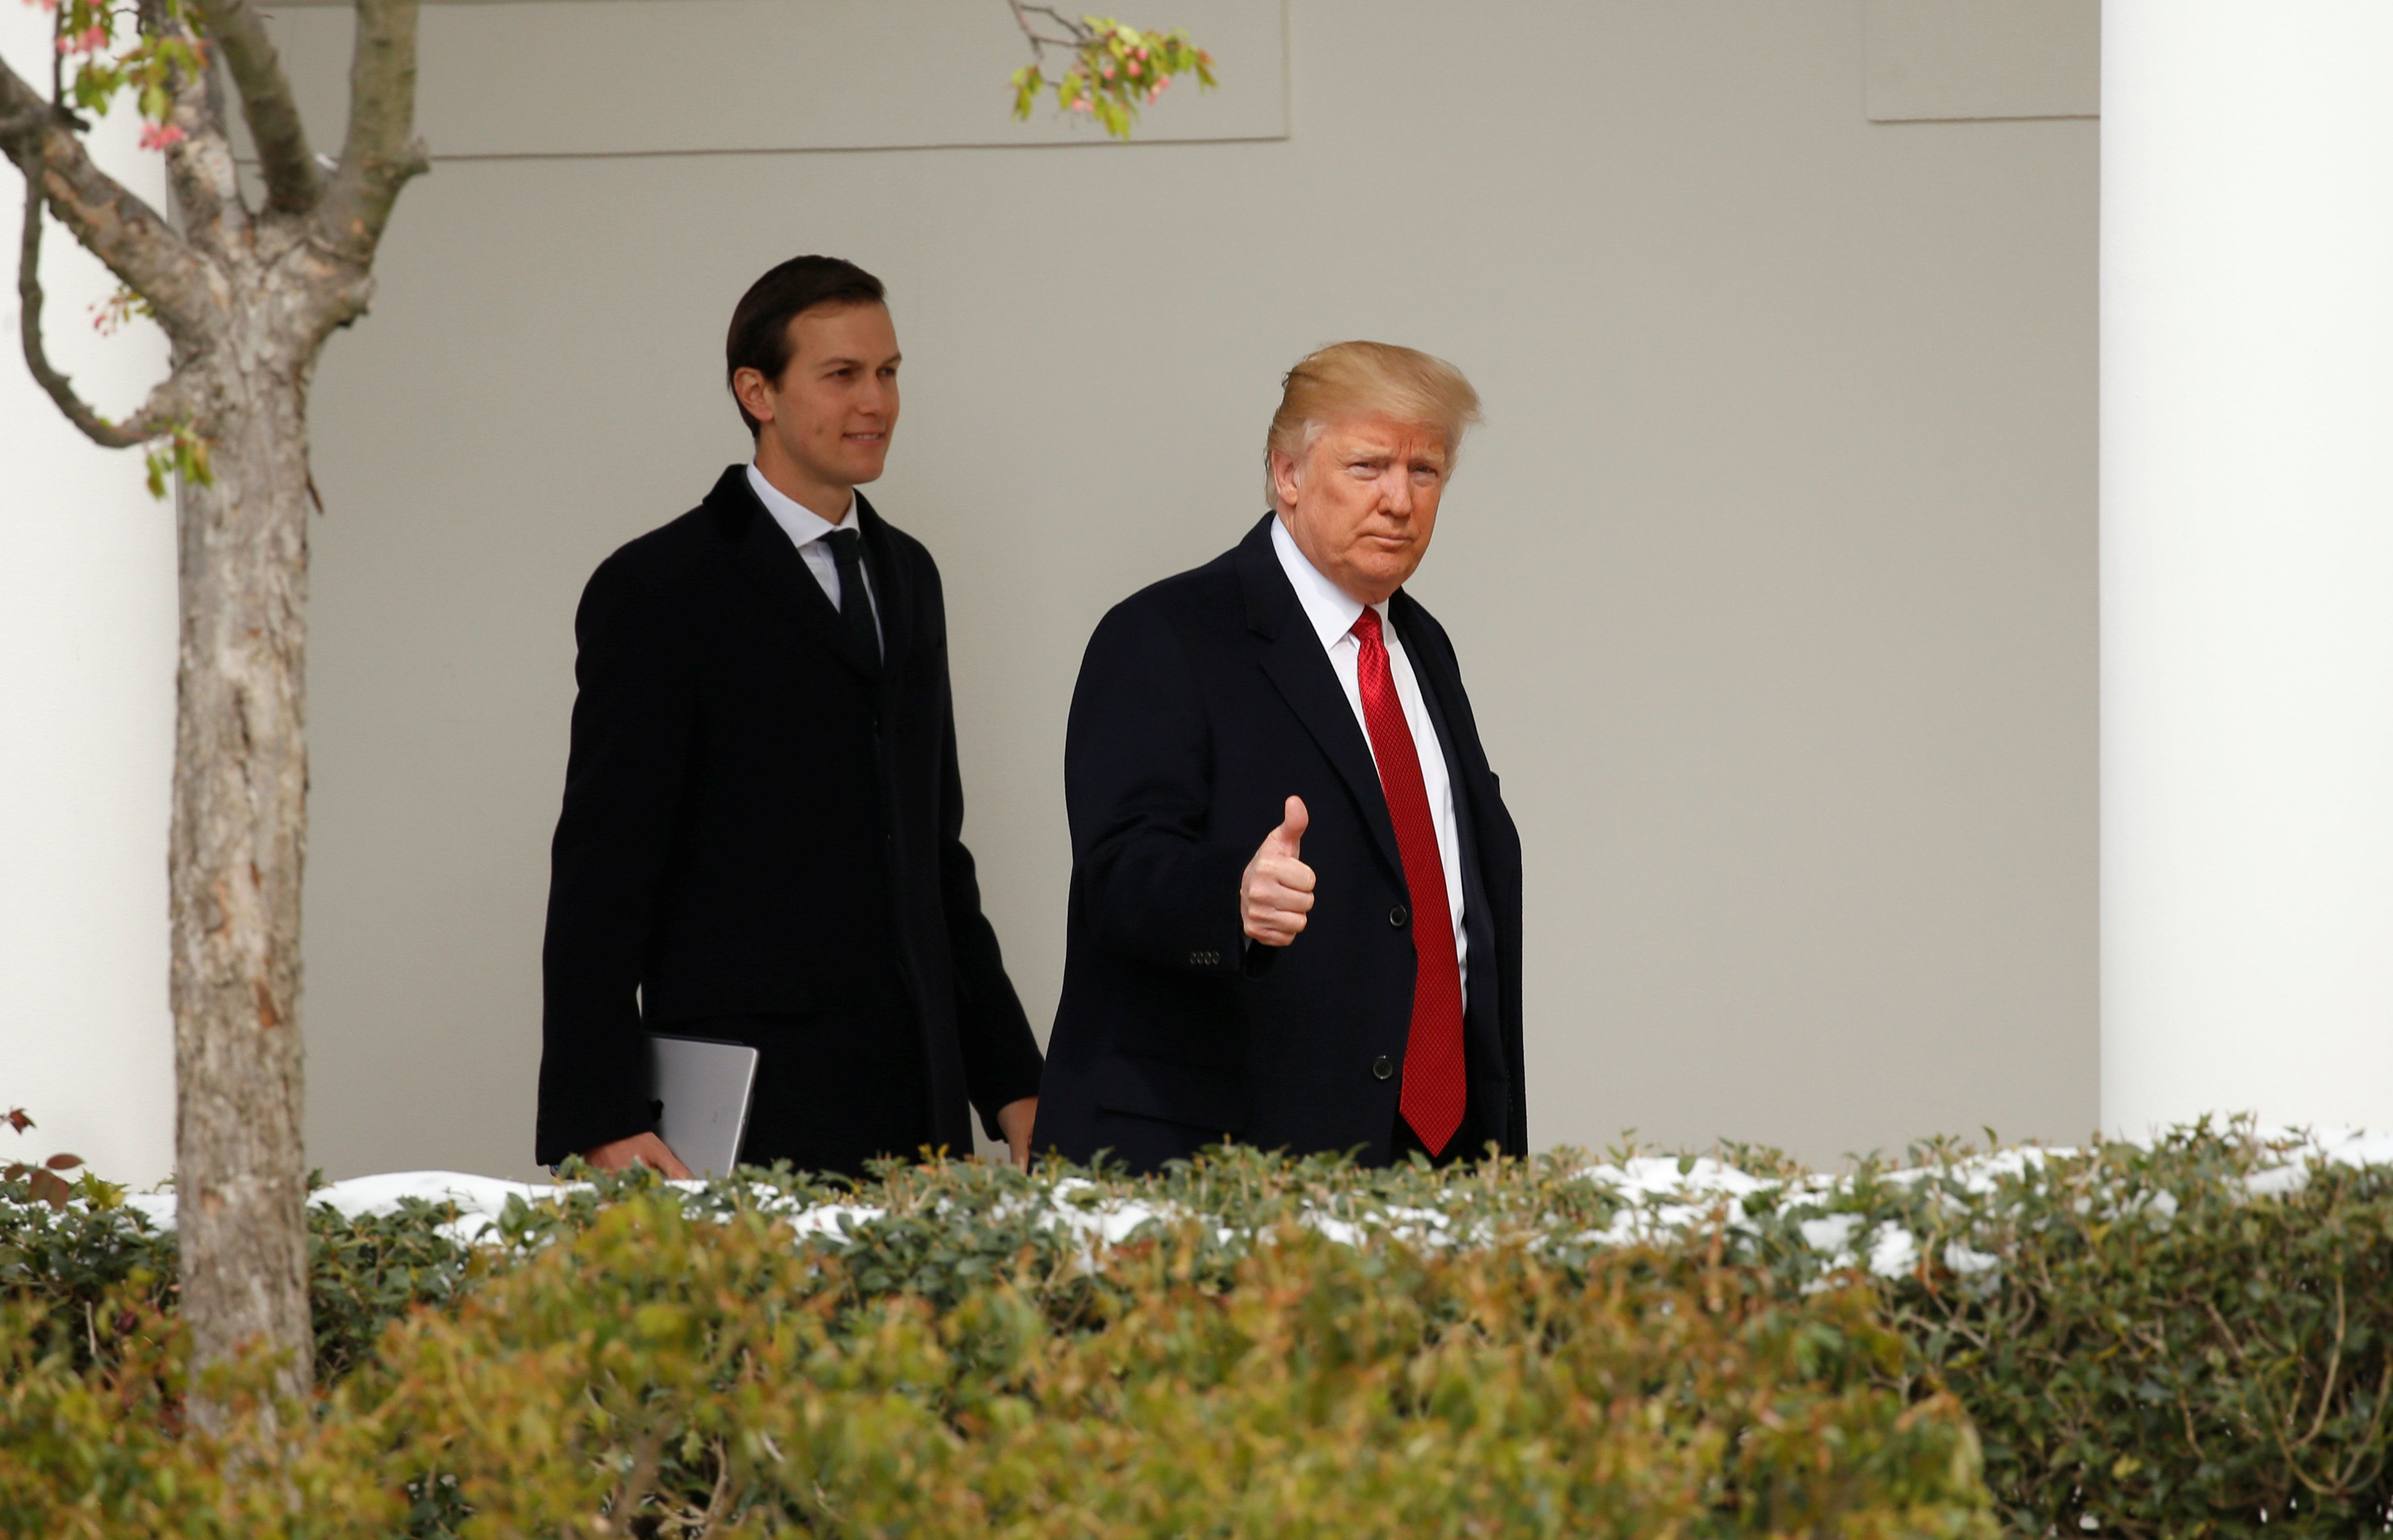 U.S. President Donald Trump gives a thumbs-up as he and White House Senior Advisor Jared Kushner depart the White House in Washington, U.S., March 15, 2017. REUTERS/Kevin Lamarque